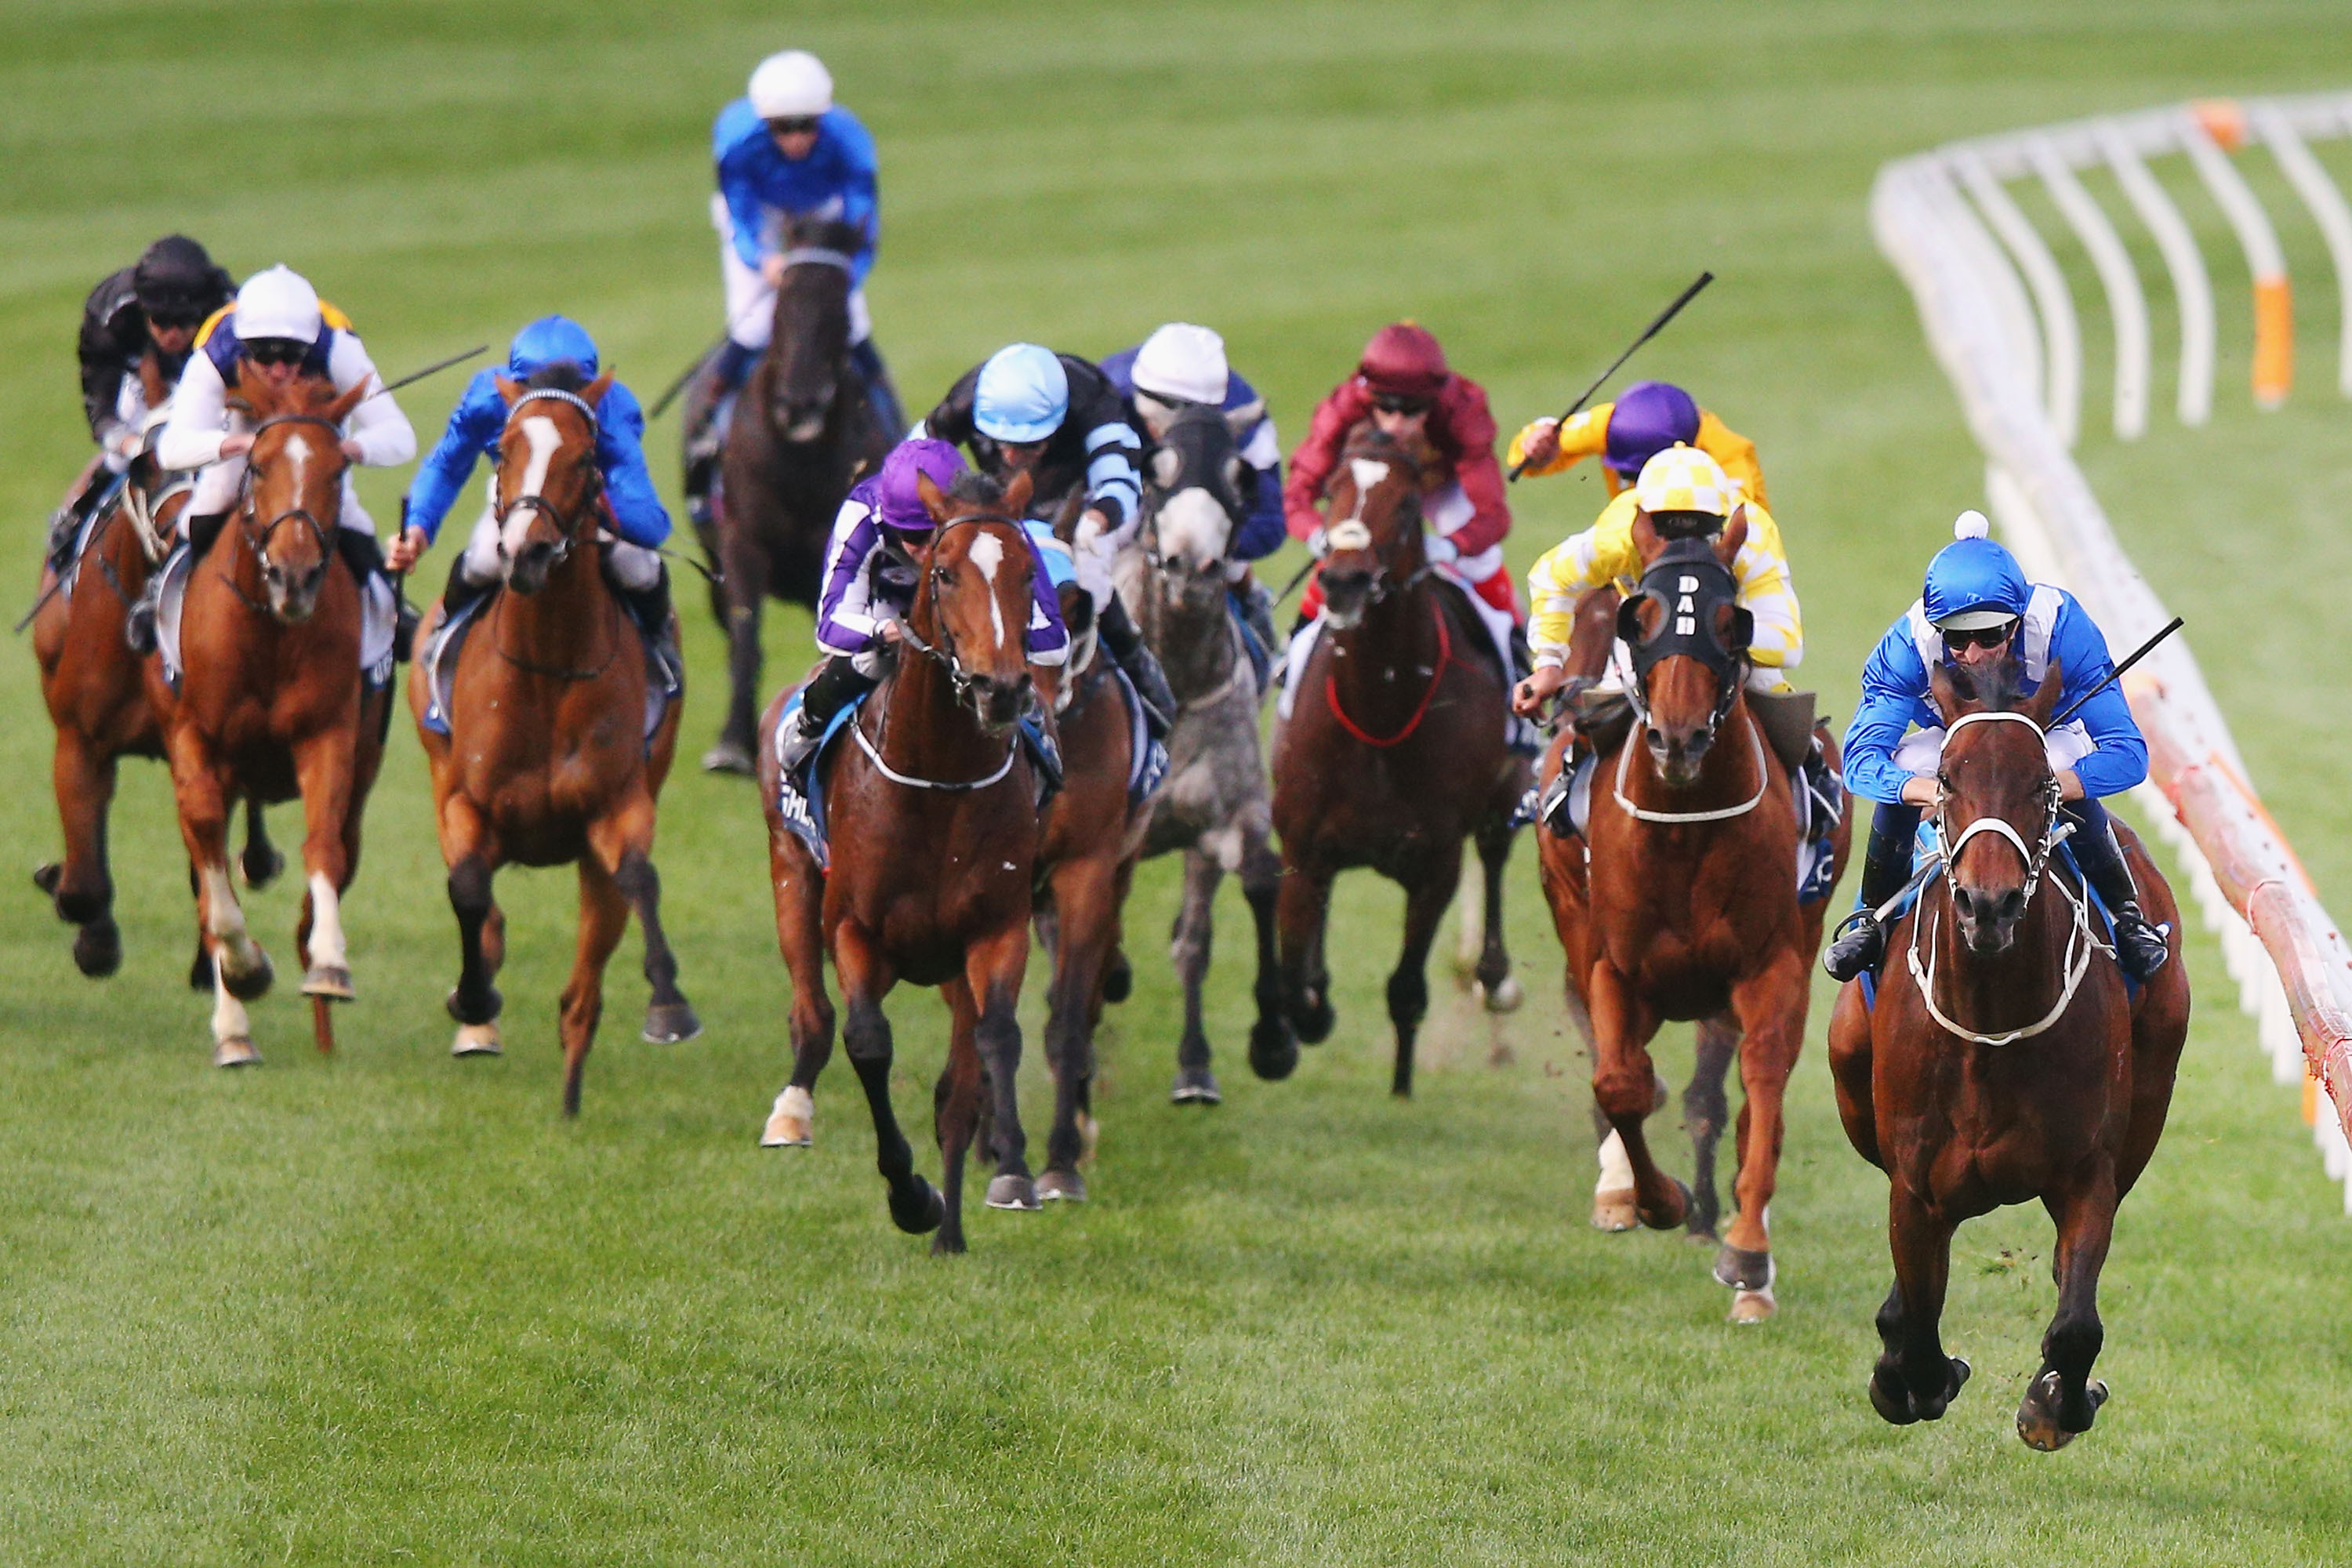 Cox plate 2021 betting on sports soccer betting rules spread